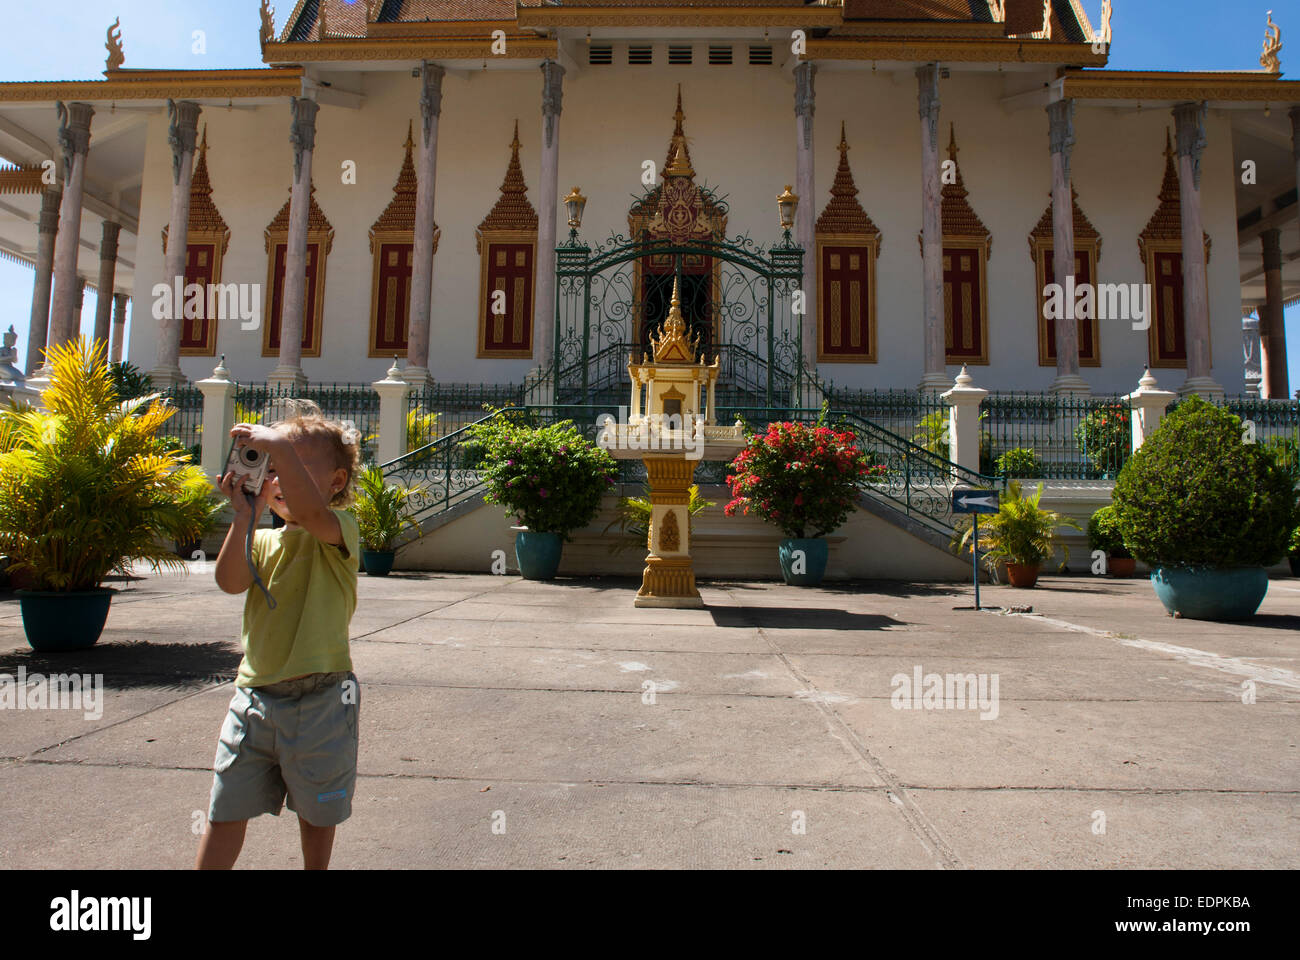 Child walking alone and take pictures in Royal Palace. Phnom Penh. The Royal Palace in Phnom Penh was constructed - Stock Image